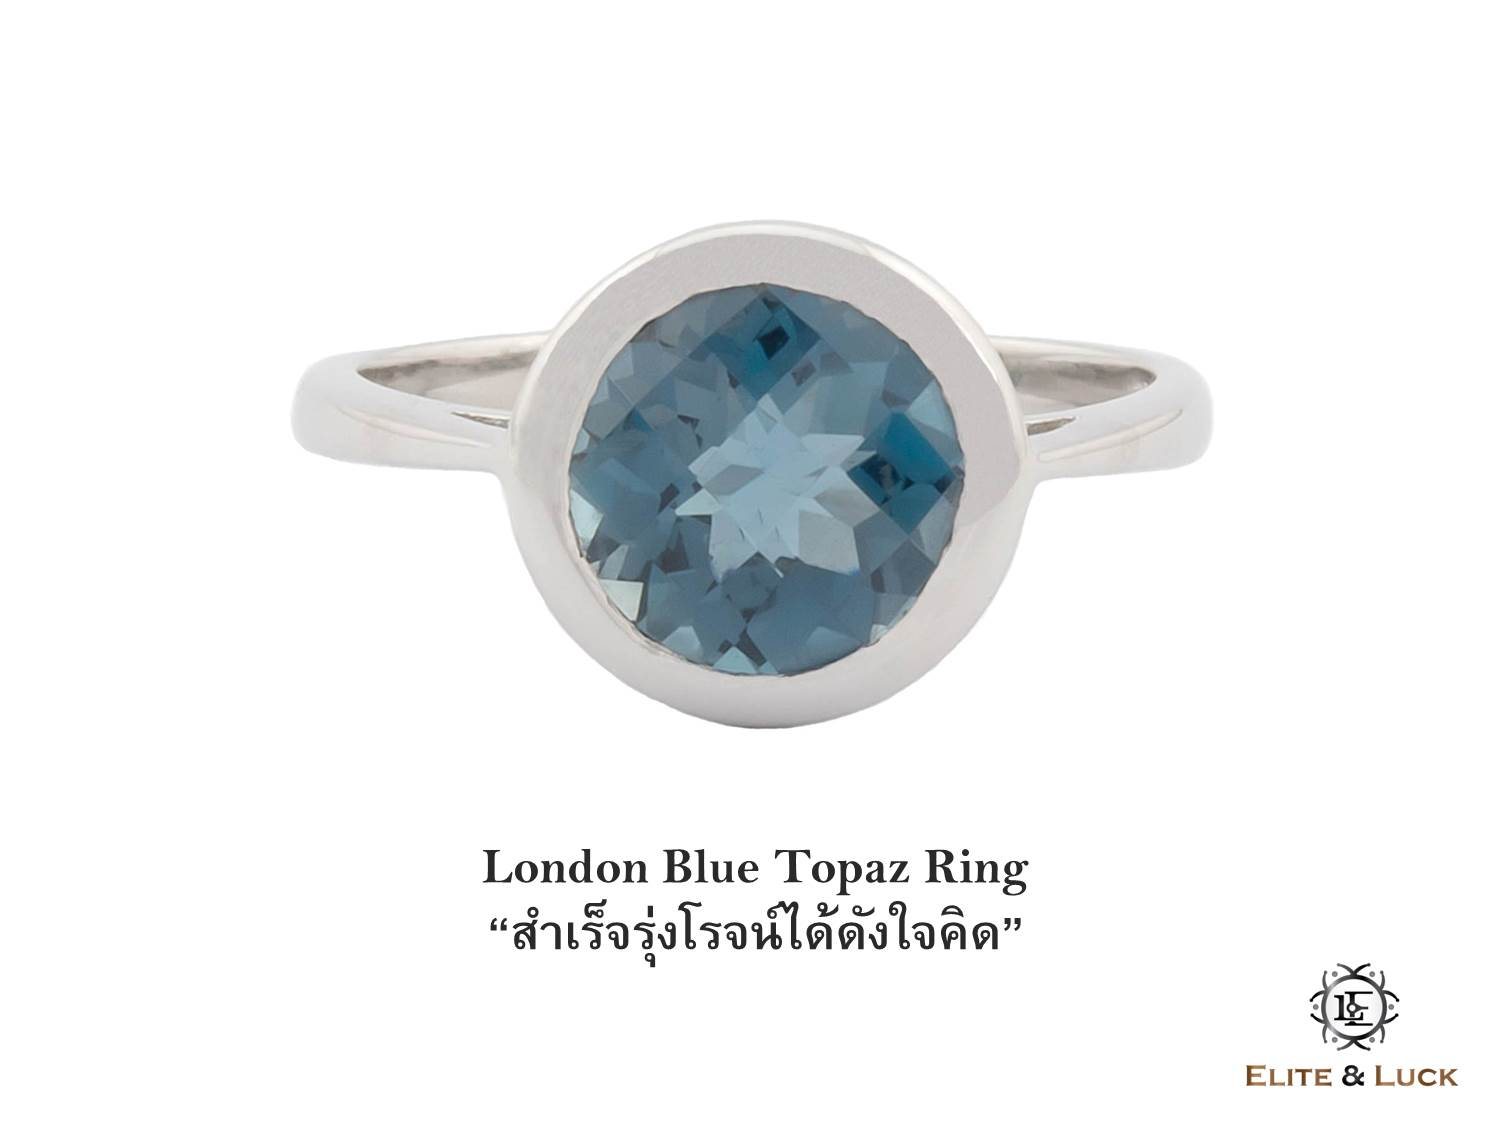 แหวน London Blue Topaz Sterling Silver สี Rhodium รุ่น Dashing